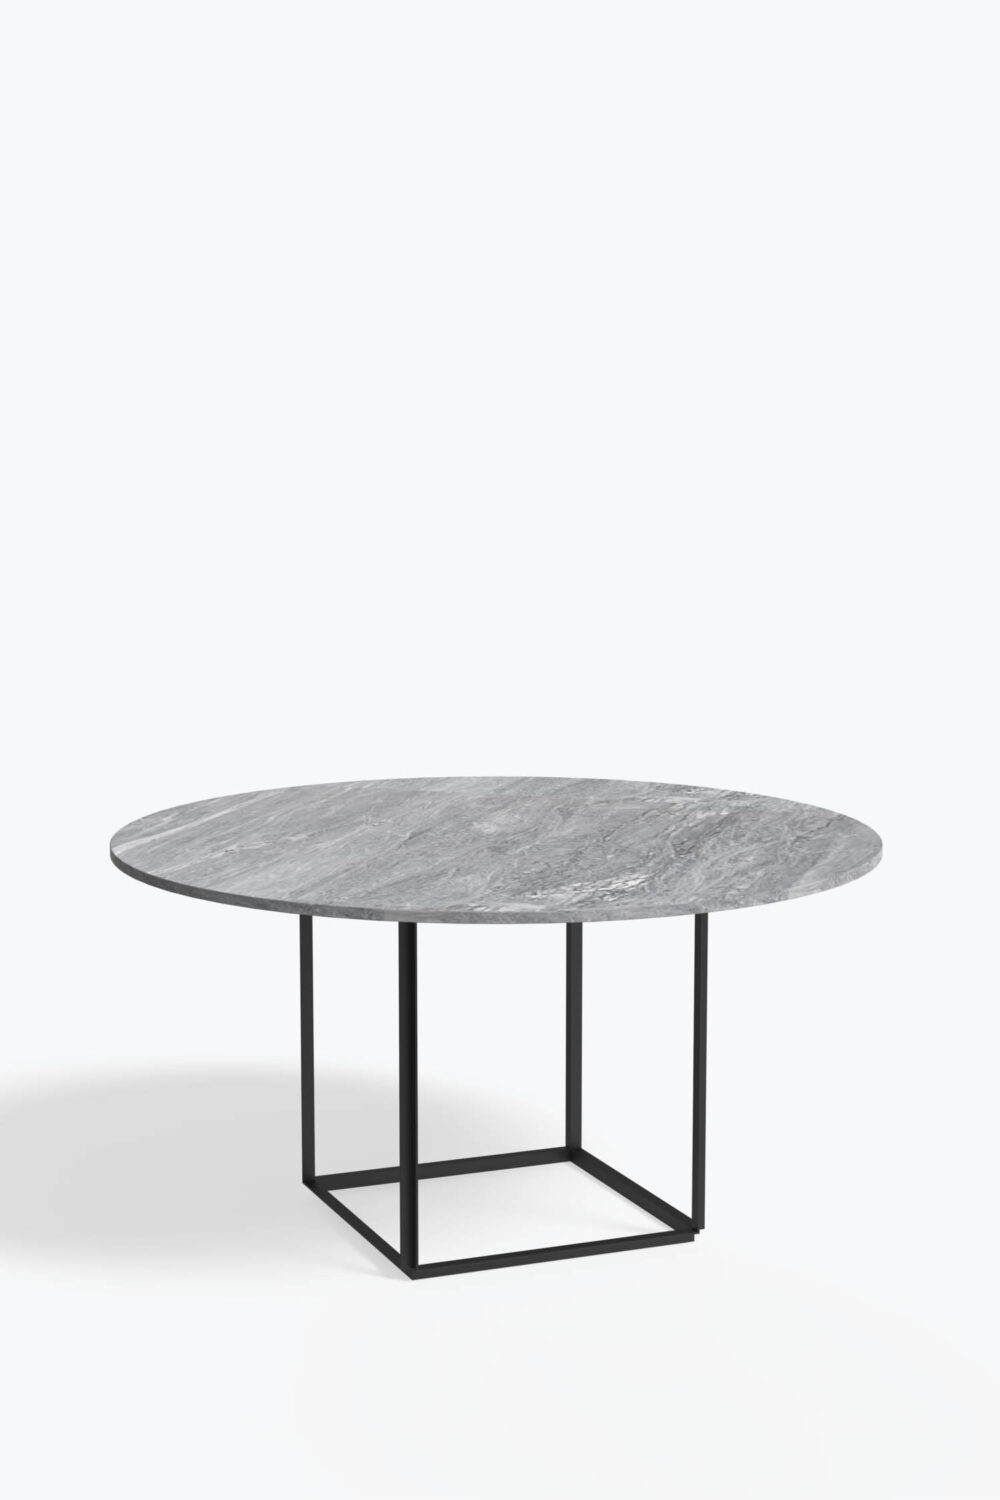 Florence+Dining+Table+Ø145+Iron+Black+Grey+Marble+Side+view